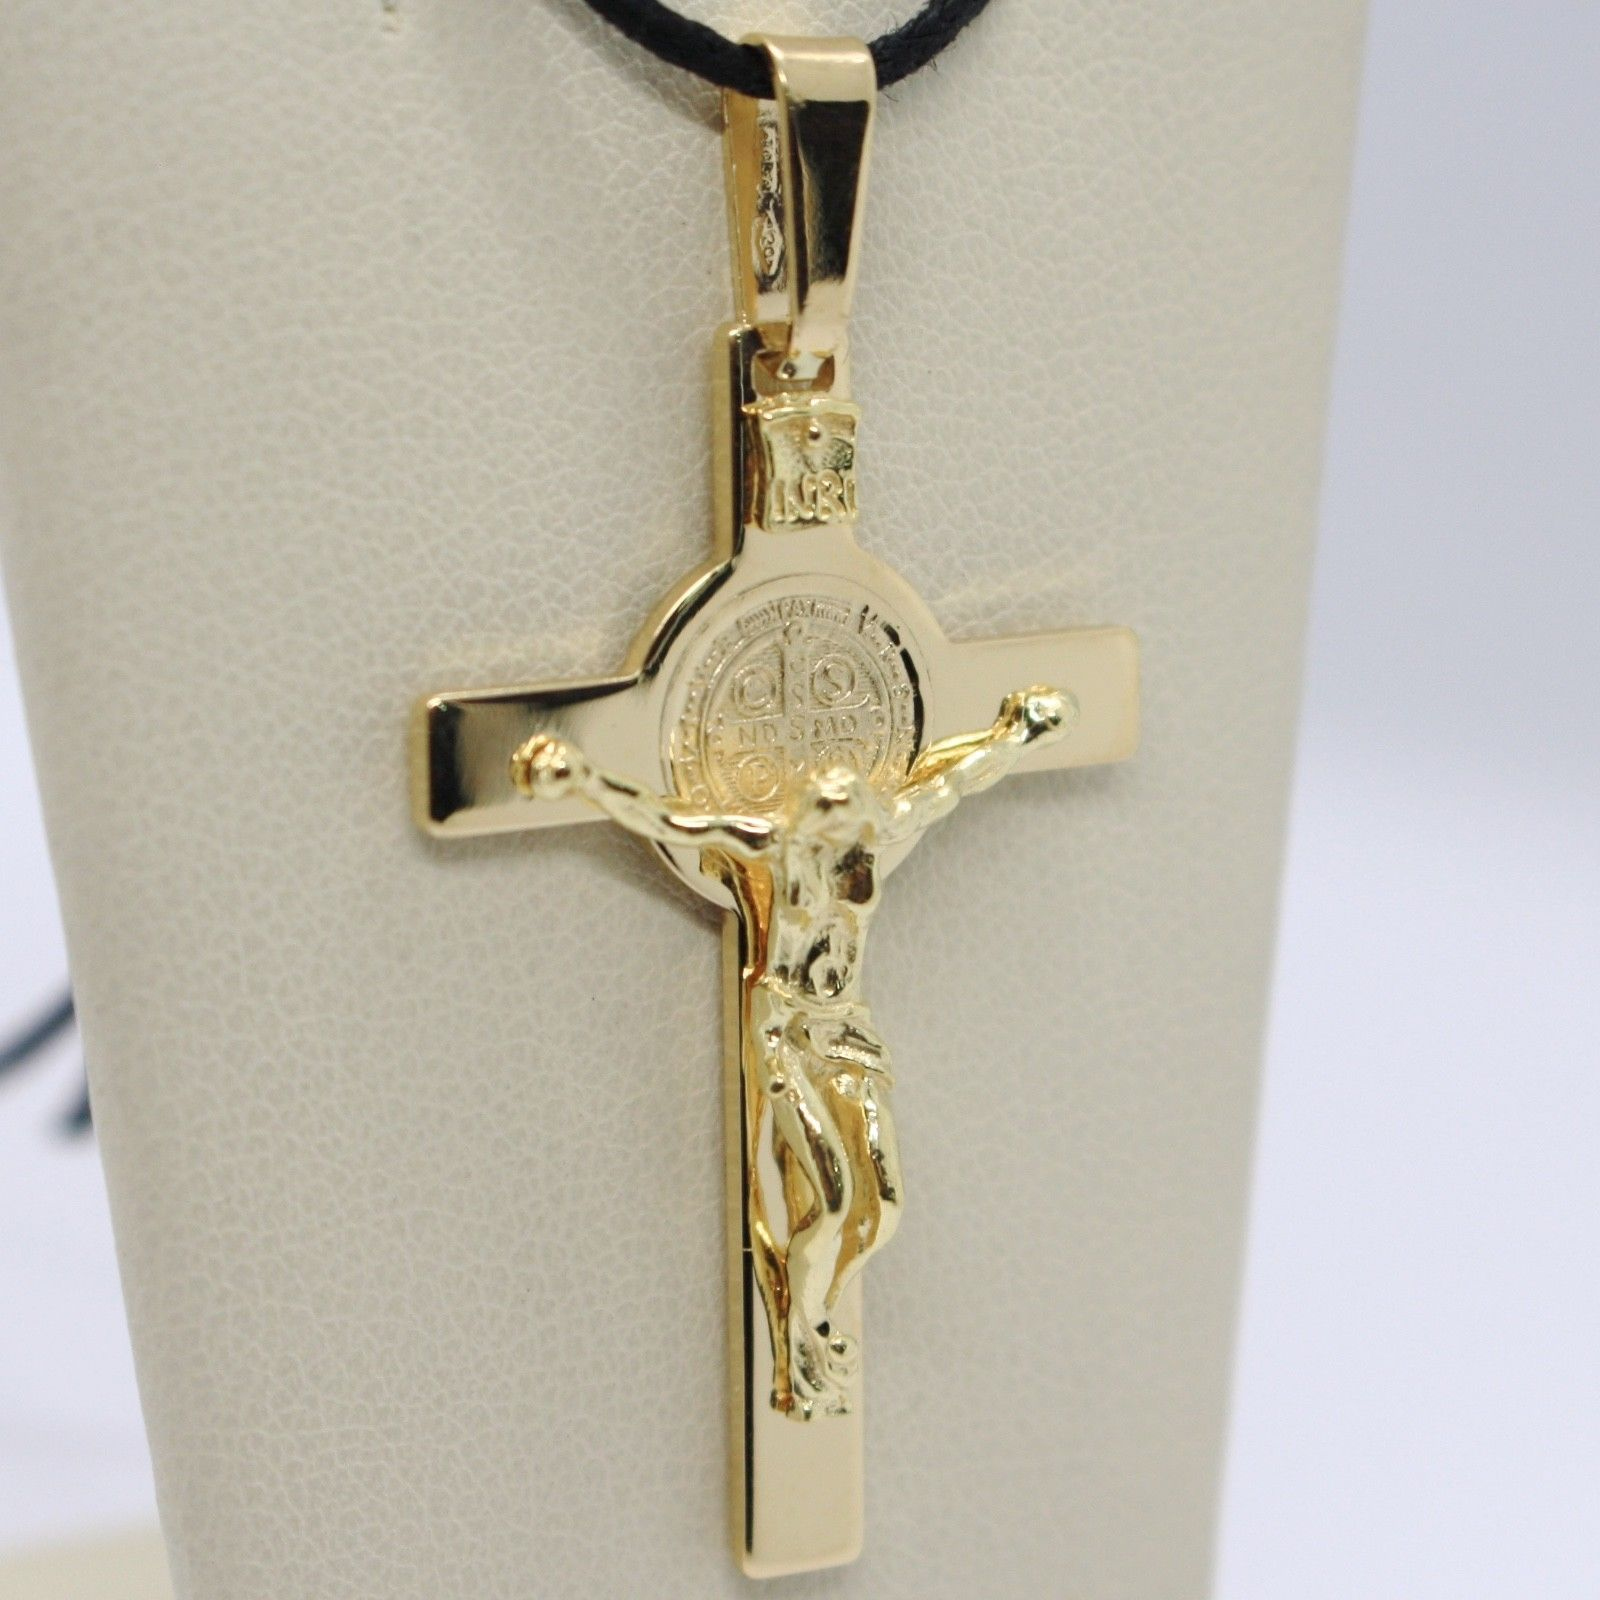 18K YELLOW GOLD BIG CROSS WITH JESUS & SAINT BENEDICT MEDAL MADE IN ITALY, 44 mm